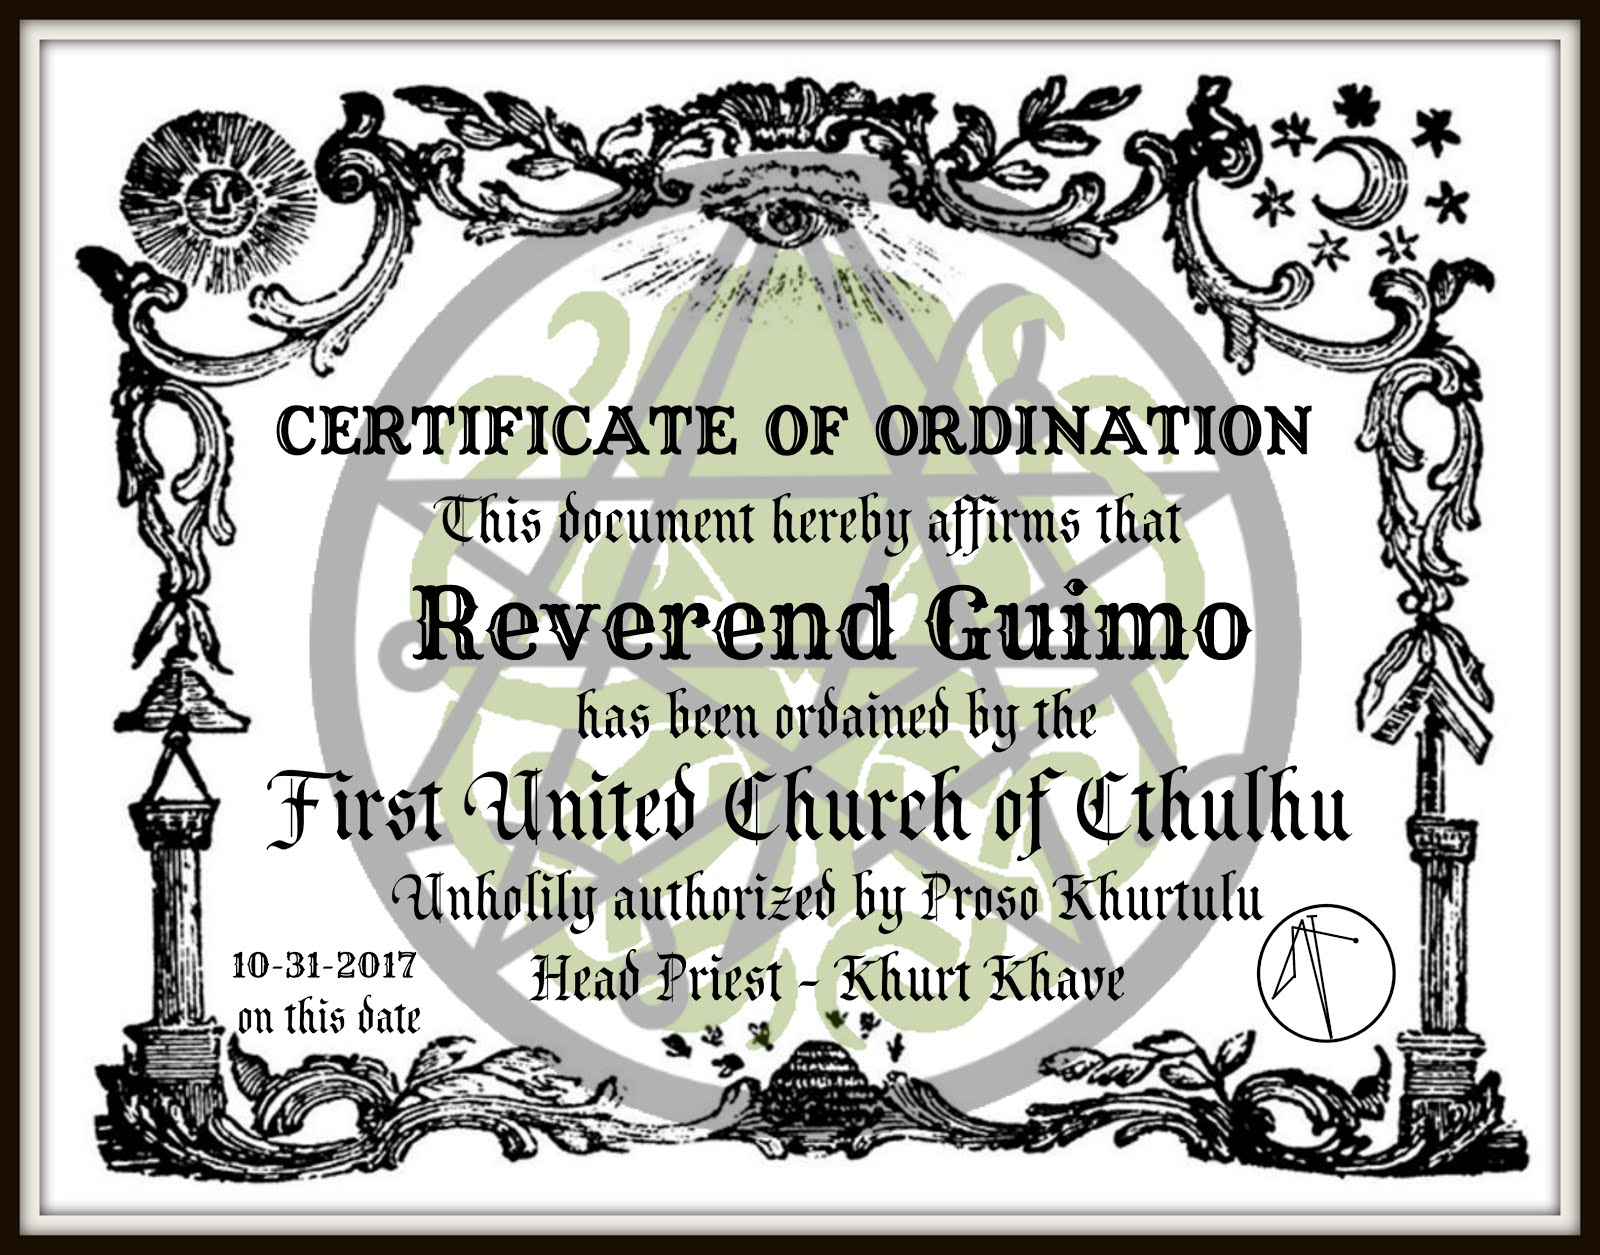 Unholy Ordainment as a Reverend of the First United Church of Cthulhu